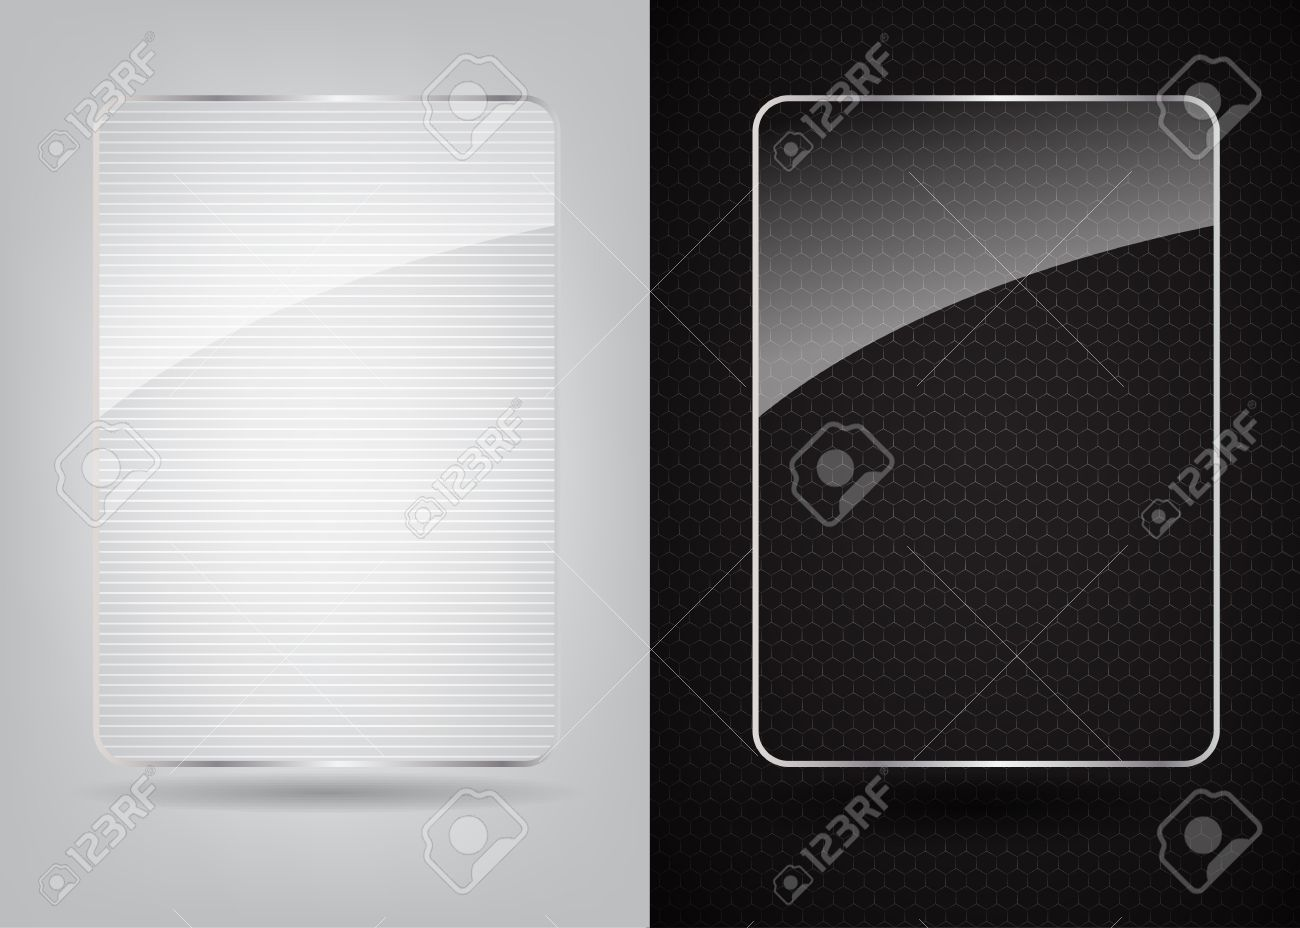 glass frame on abstract metal background vector illustration stock vector 17472300